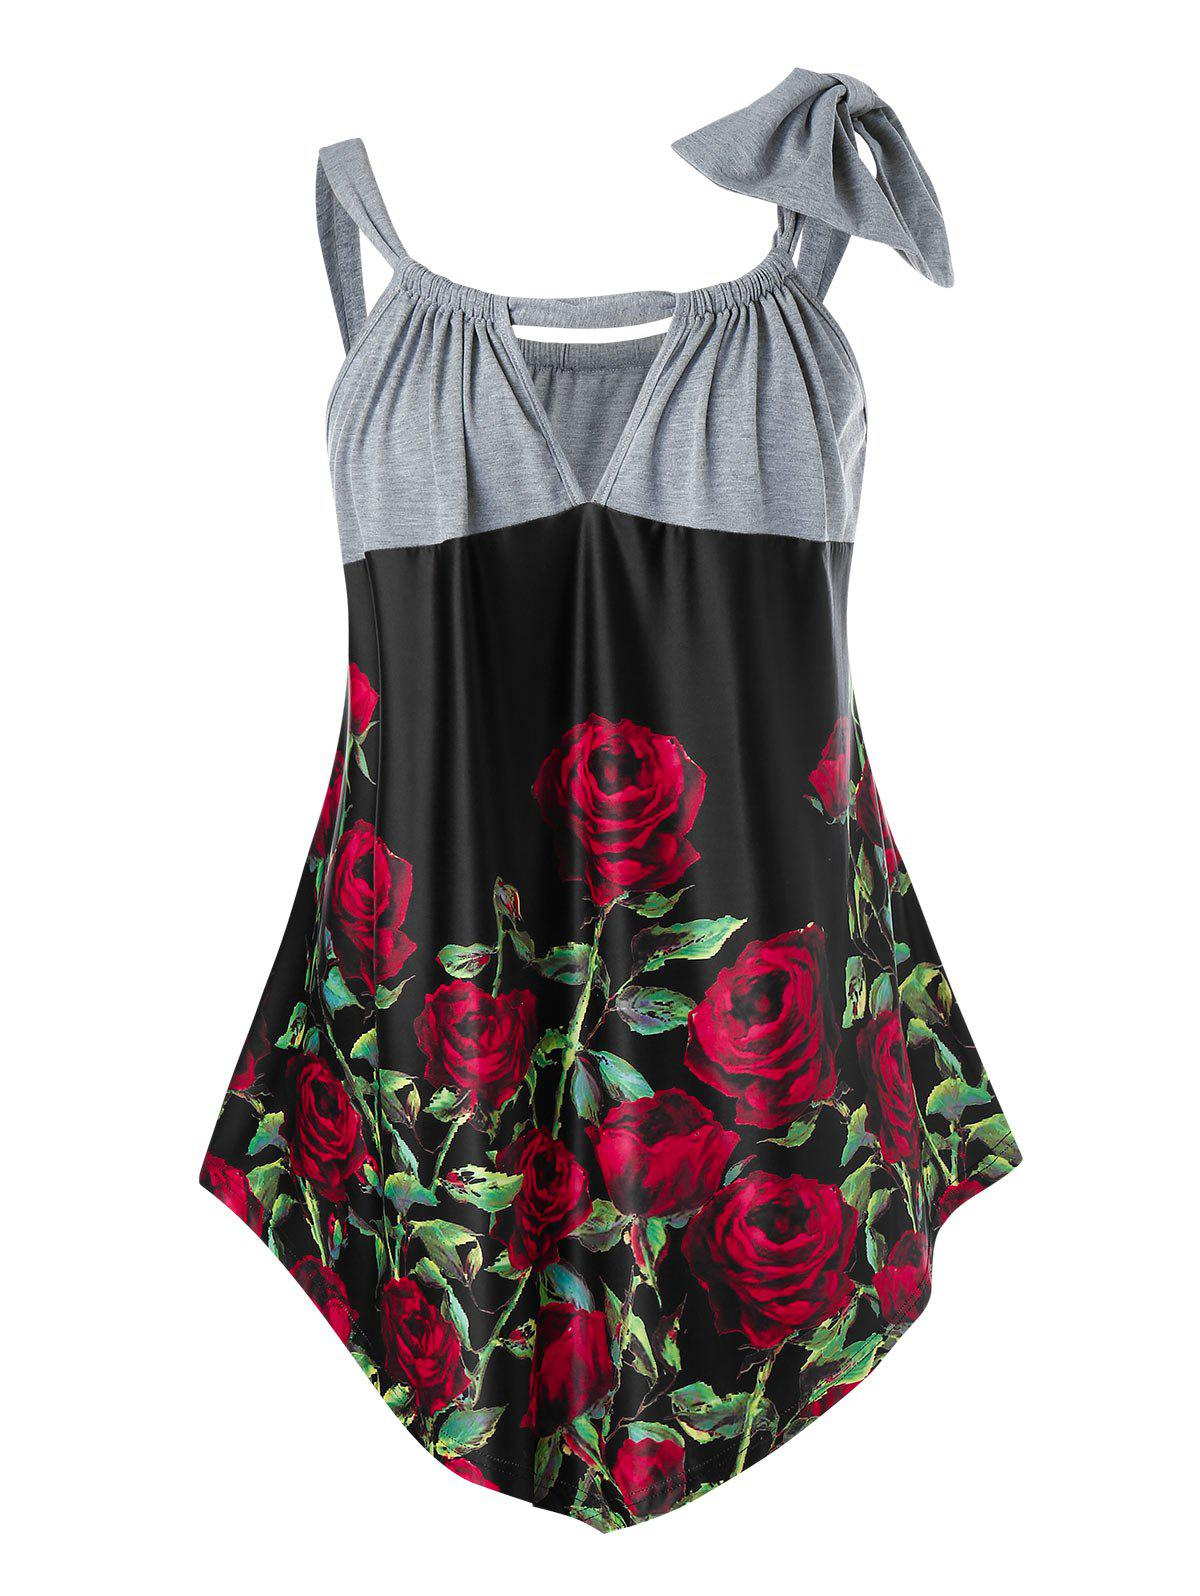 Plus Size Rose Print Bowknot Keyhole Tank Top